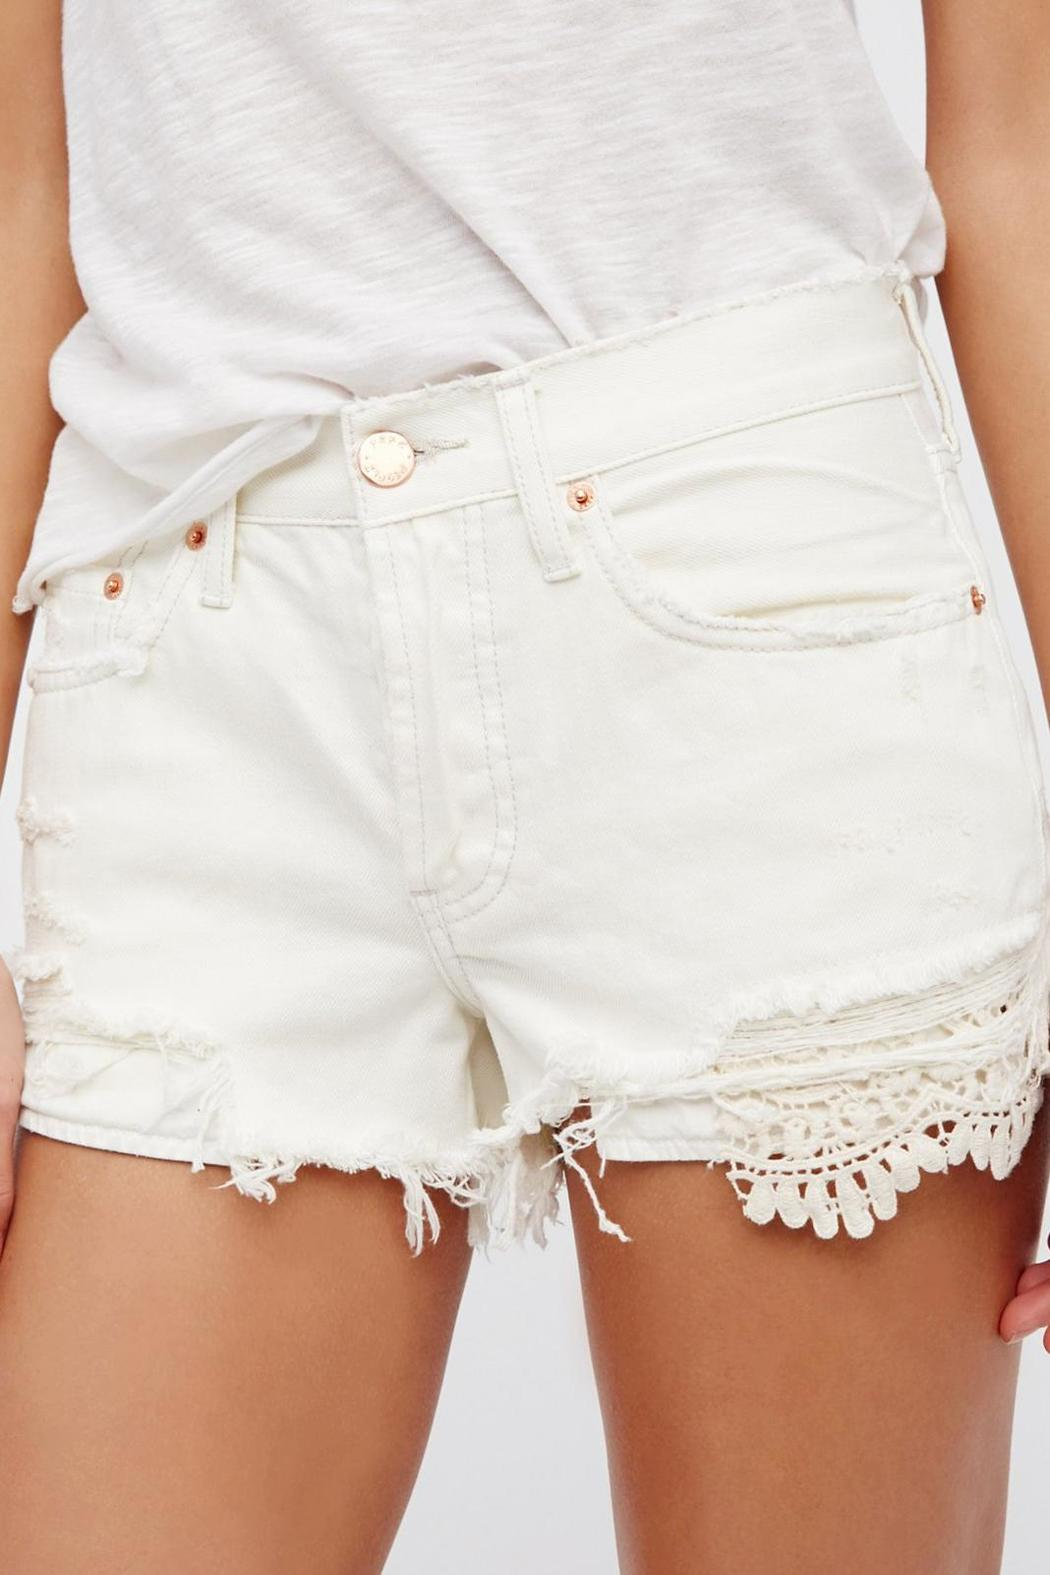 Free People Daisy Chain Lace Short - Side Cropped Image